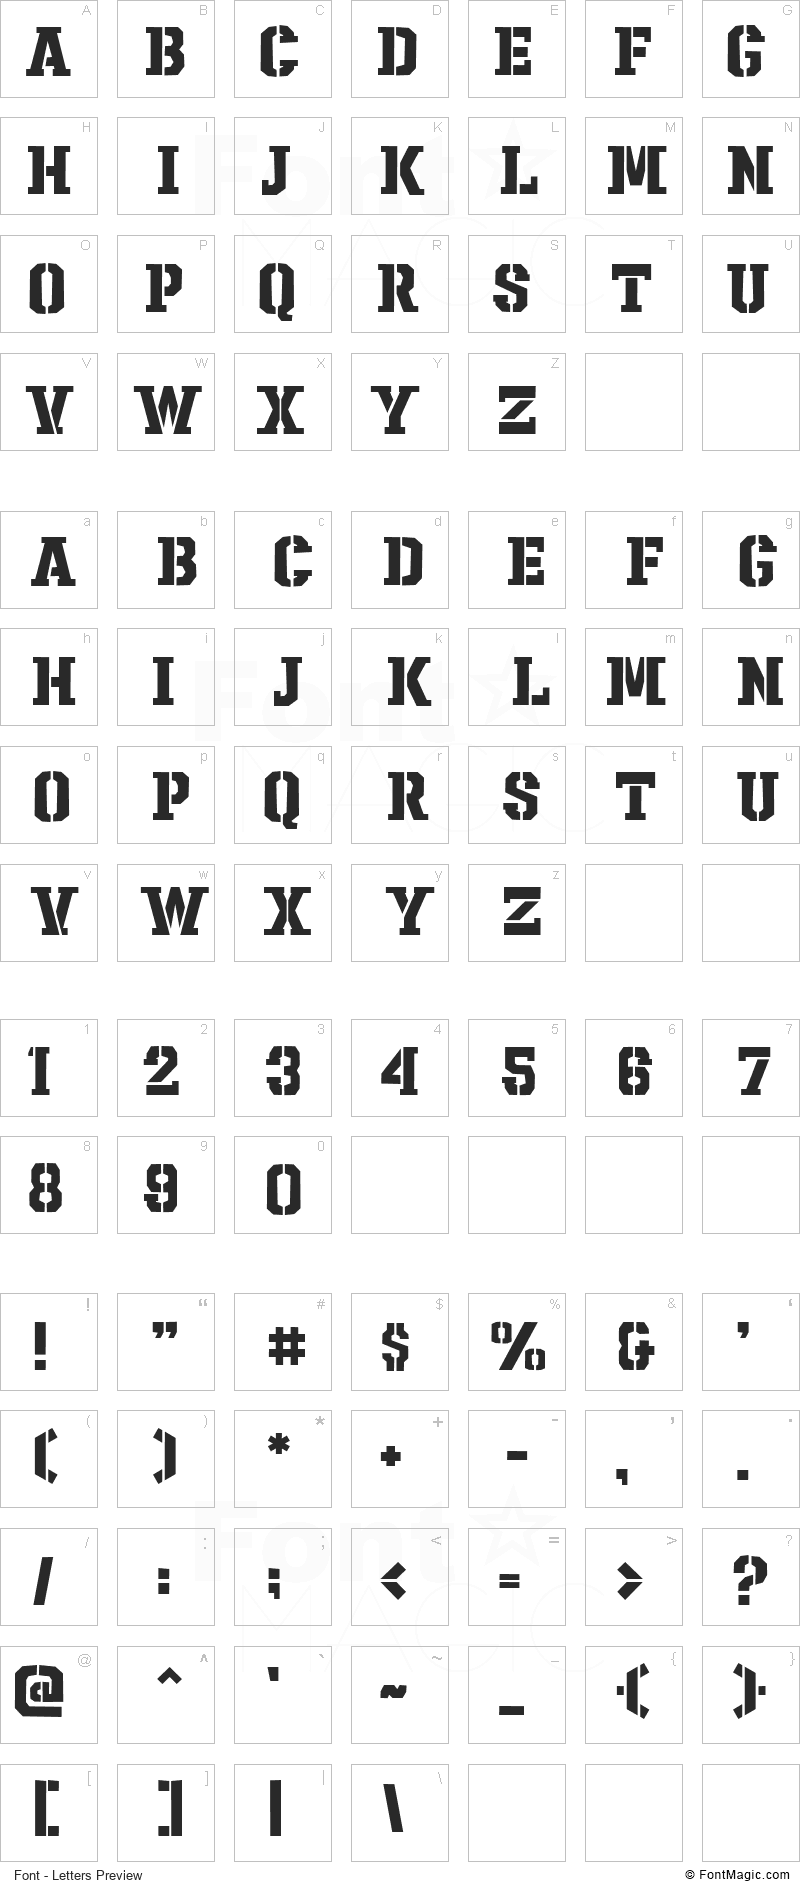 Sharpshooter Font - All Latters Preview Chart